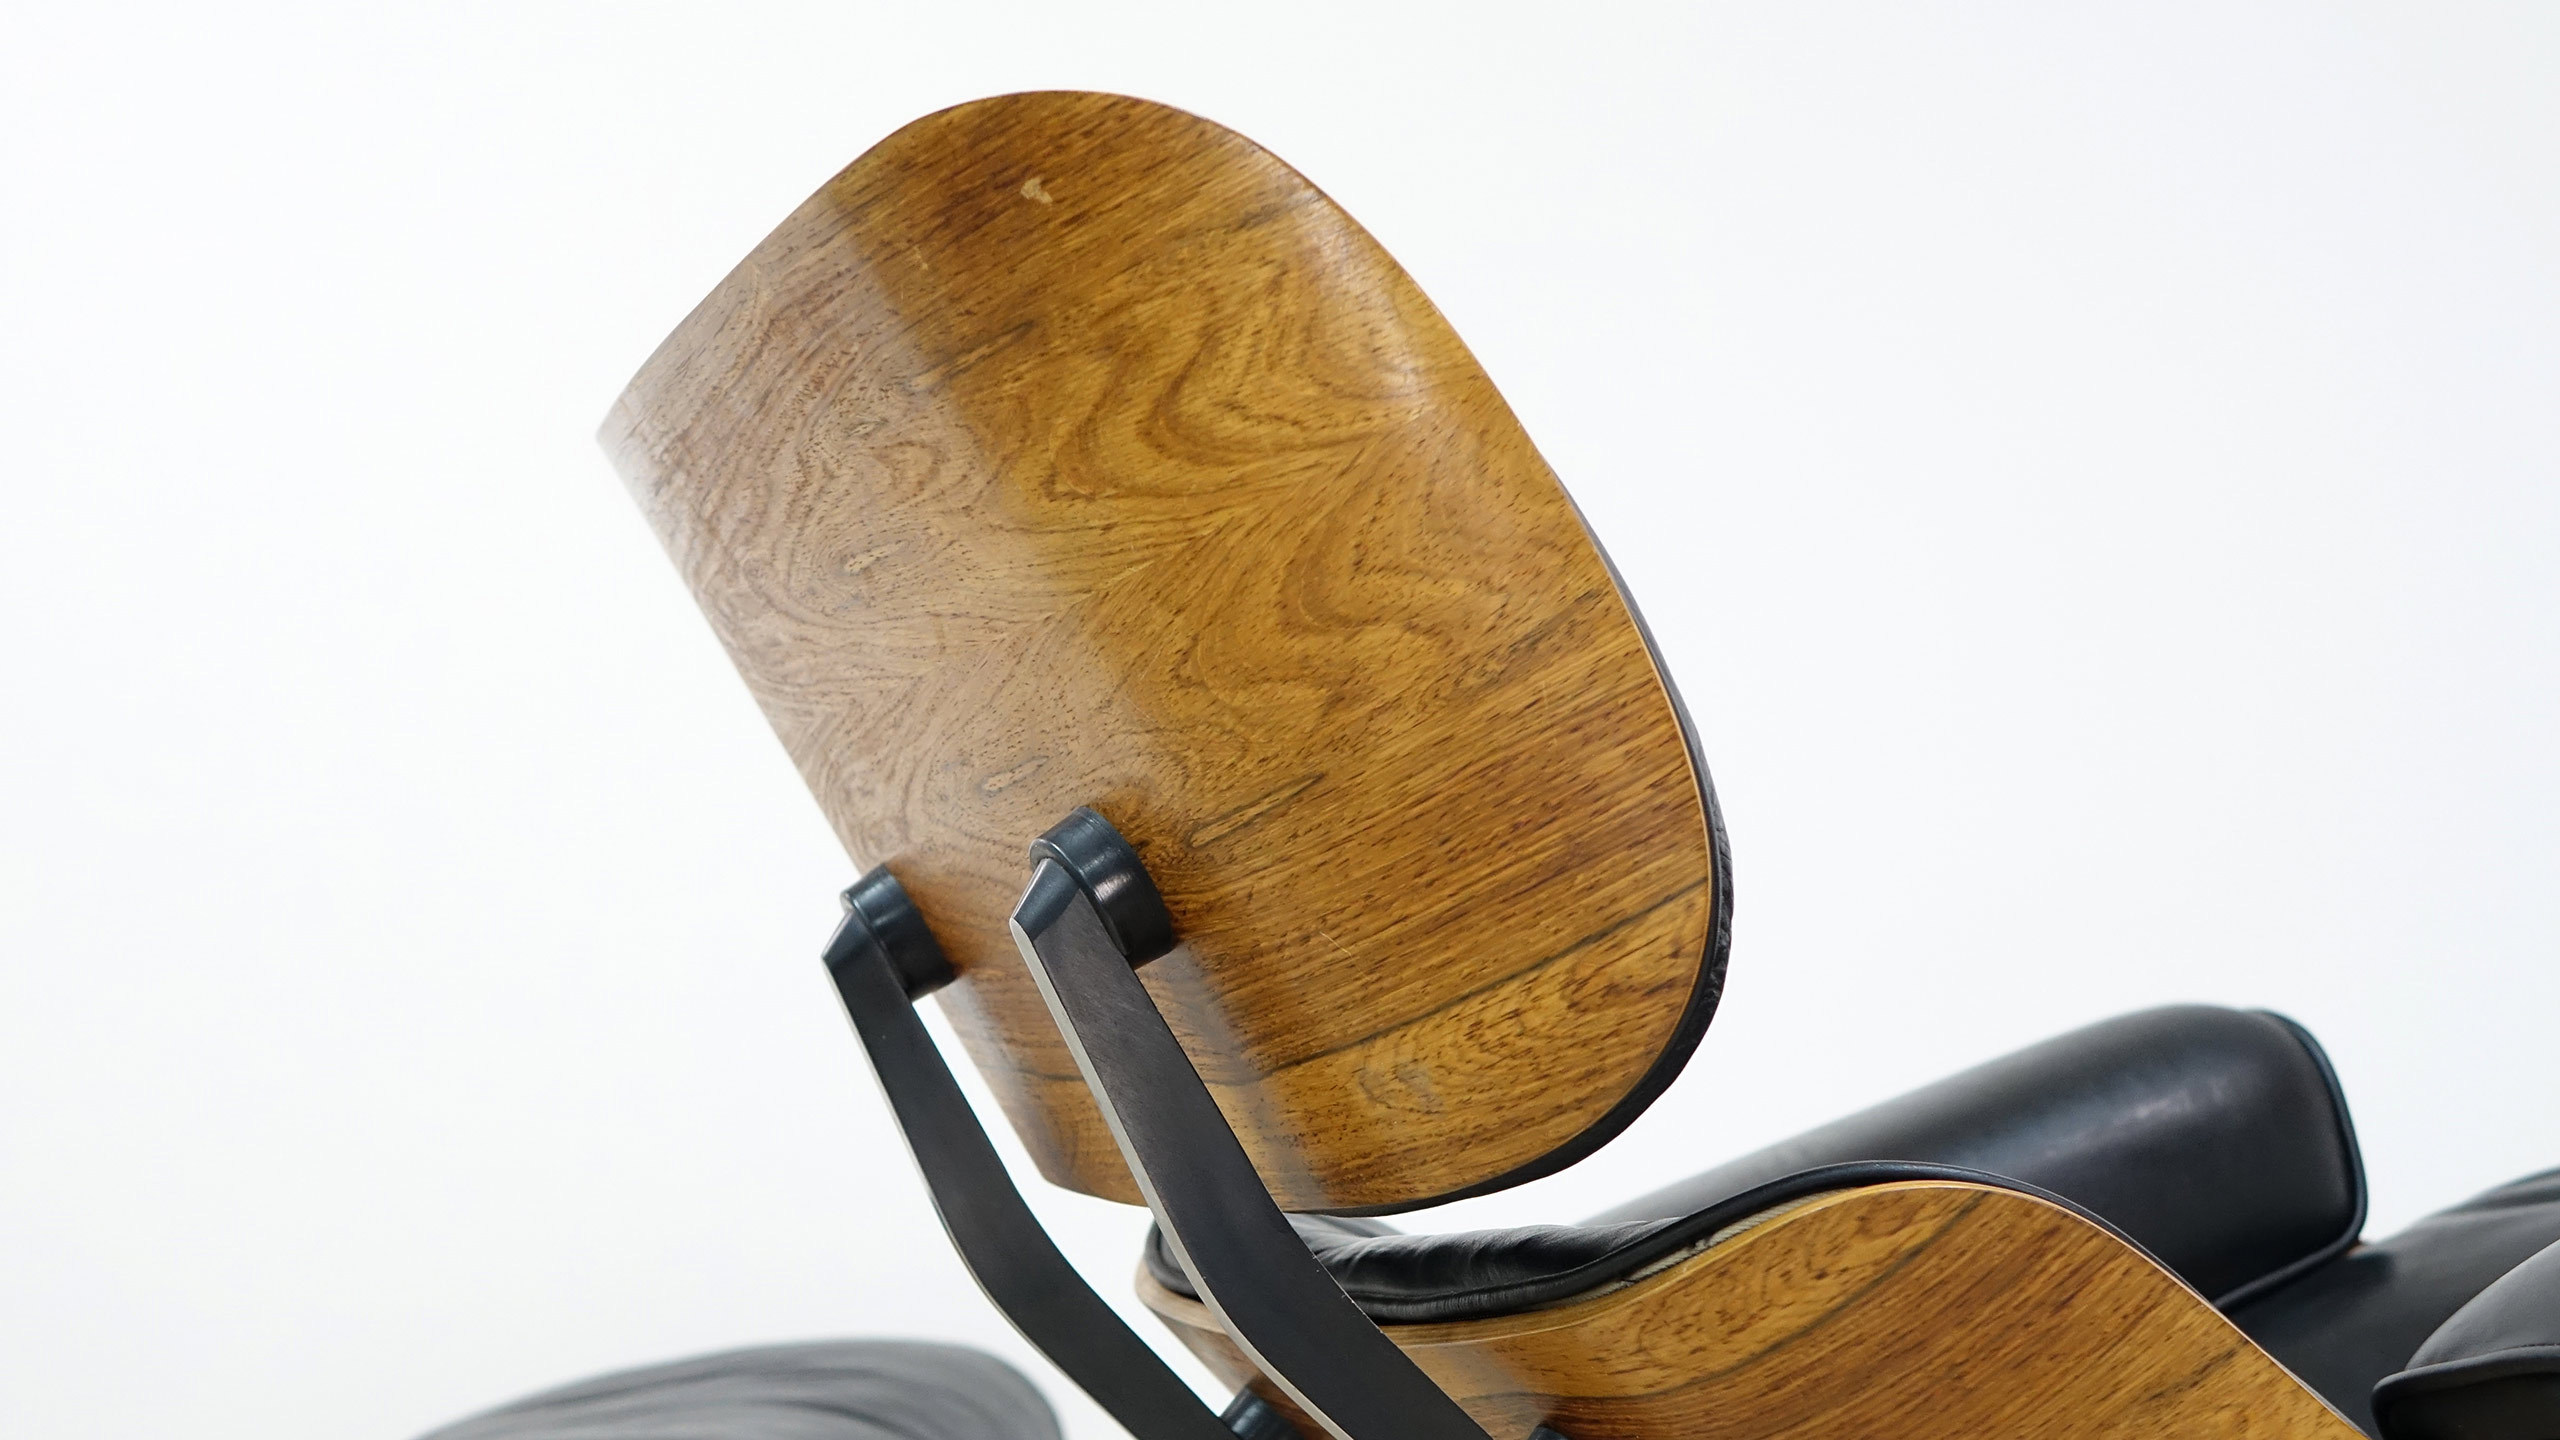 Charles Amp Ray Eames Lounge Chair By Contura Amp Fehlbaum